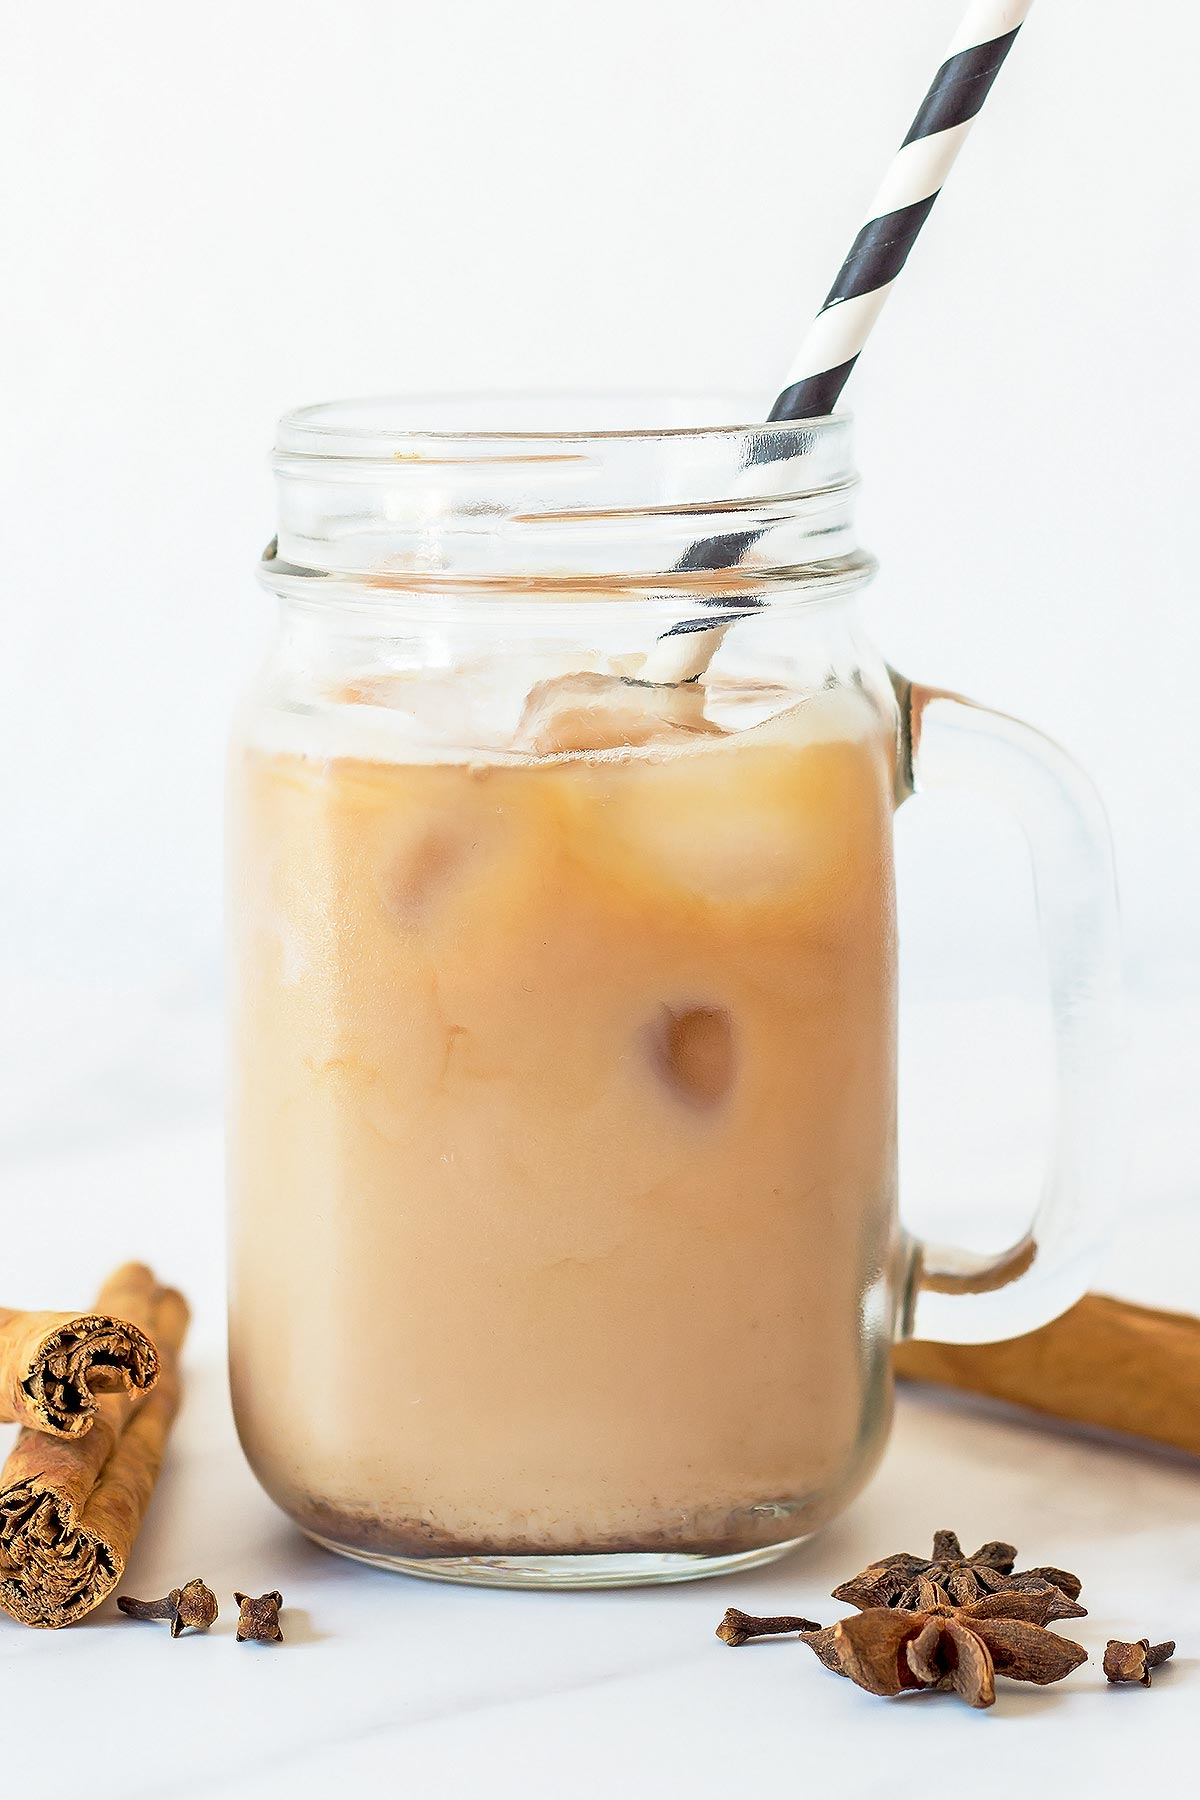 Spiced Iced Tea Latte in Mug with straw